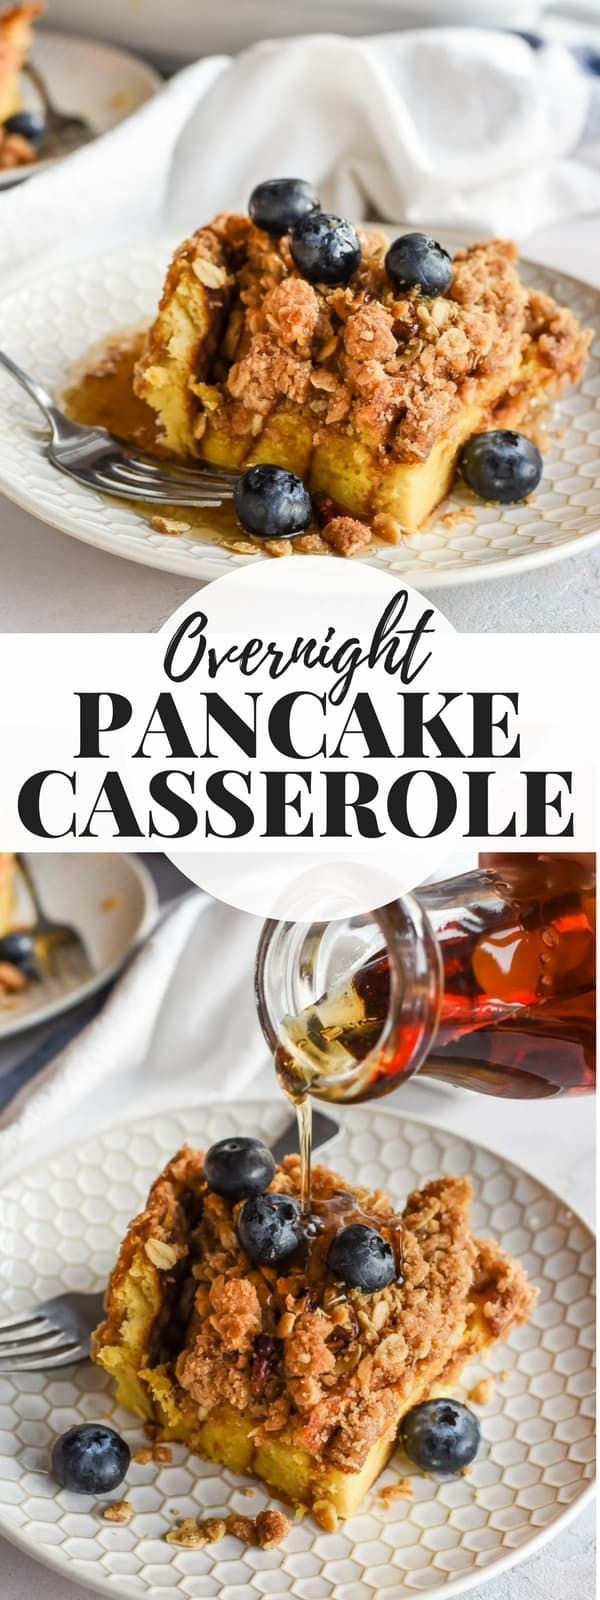 This Overnight Pancake Casserole is the perfect make ahead friendly breakfast! Fluffy buttermilk pancakes, an eggy custard, and a crunchy cinnamon streusel topping make this a decadent breakfast for any occasion! #pancakes #makeahead #breakfastrecipe #brunch #pancakecasserole